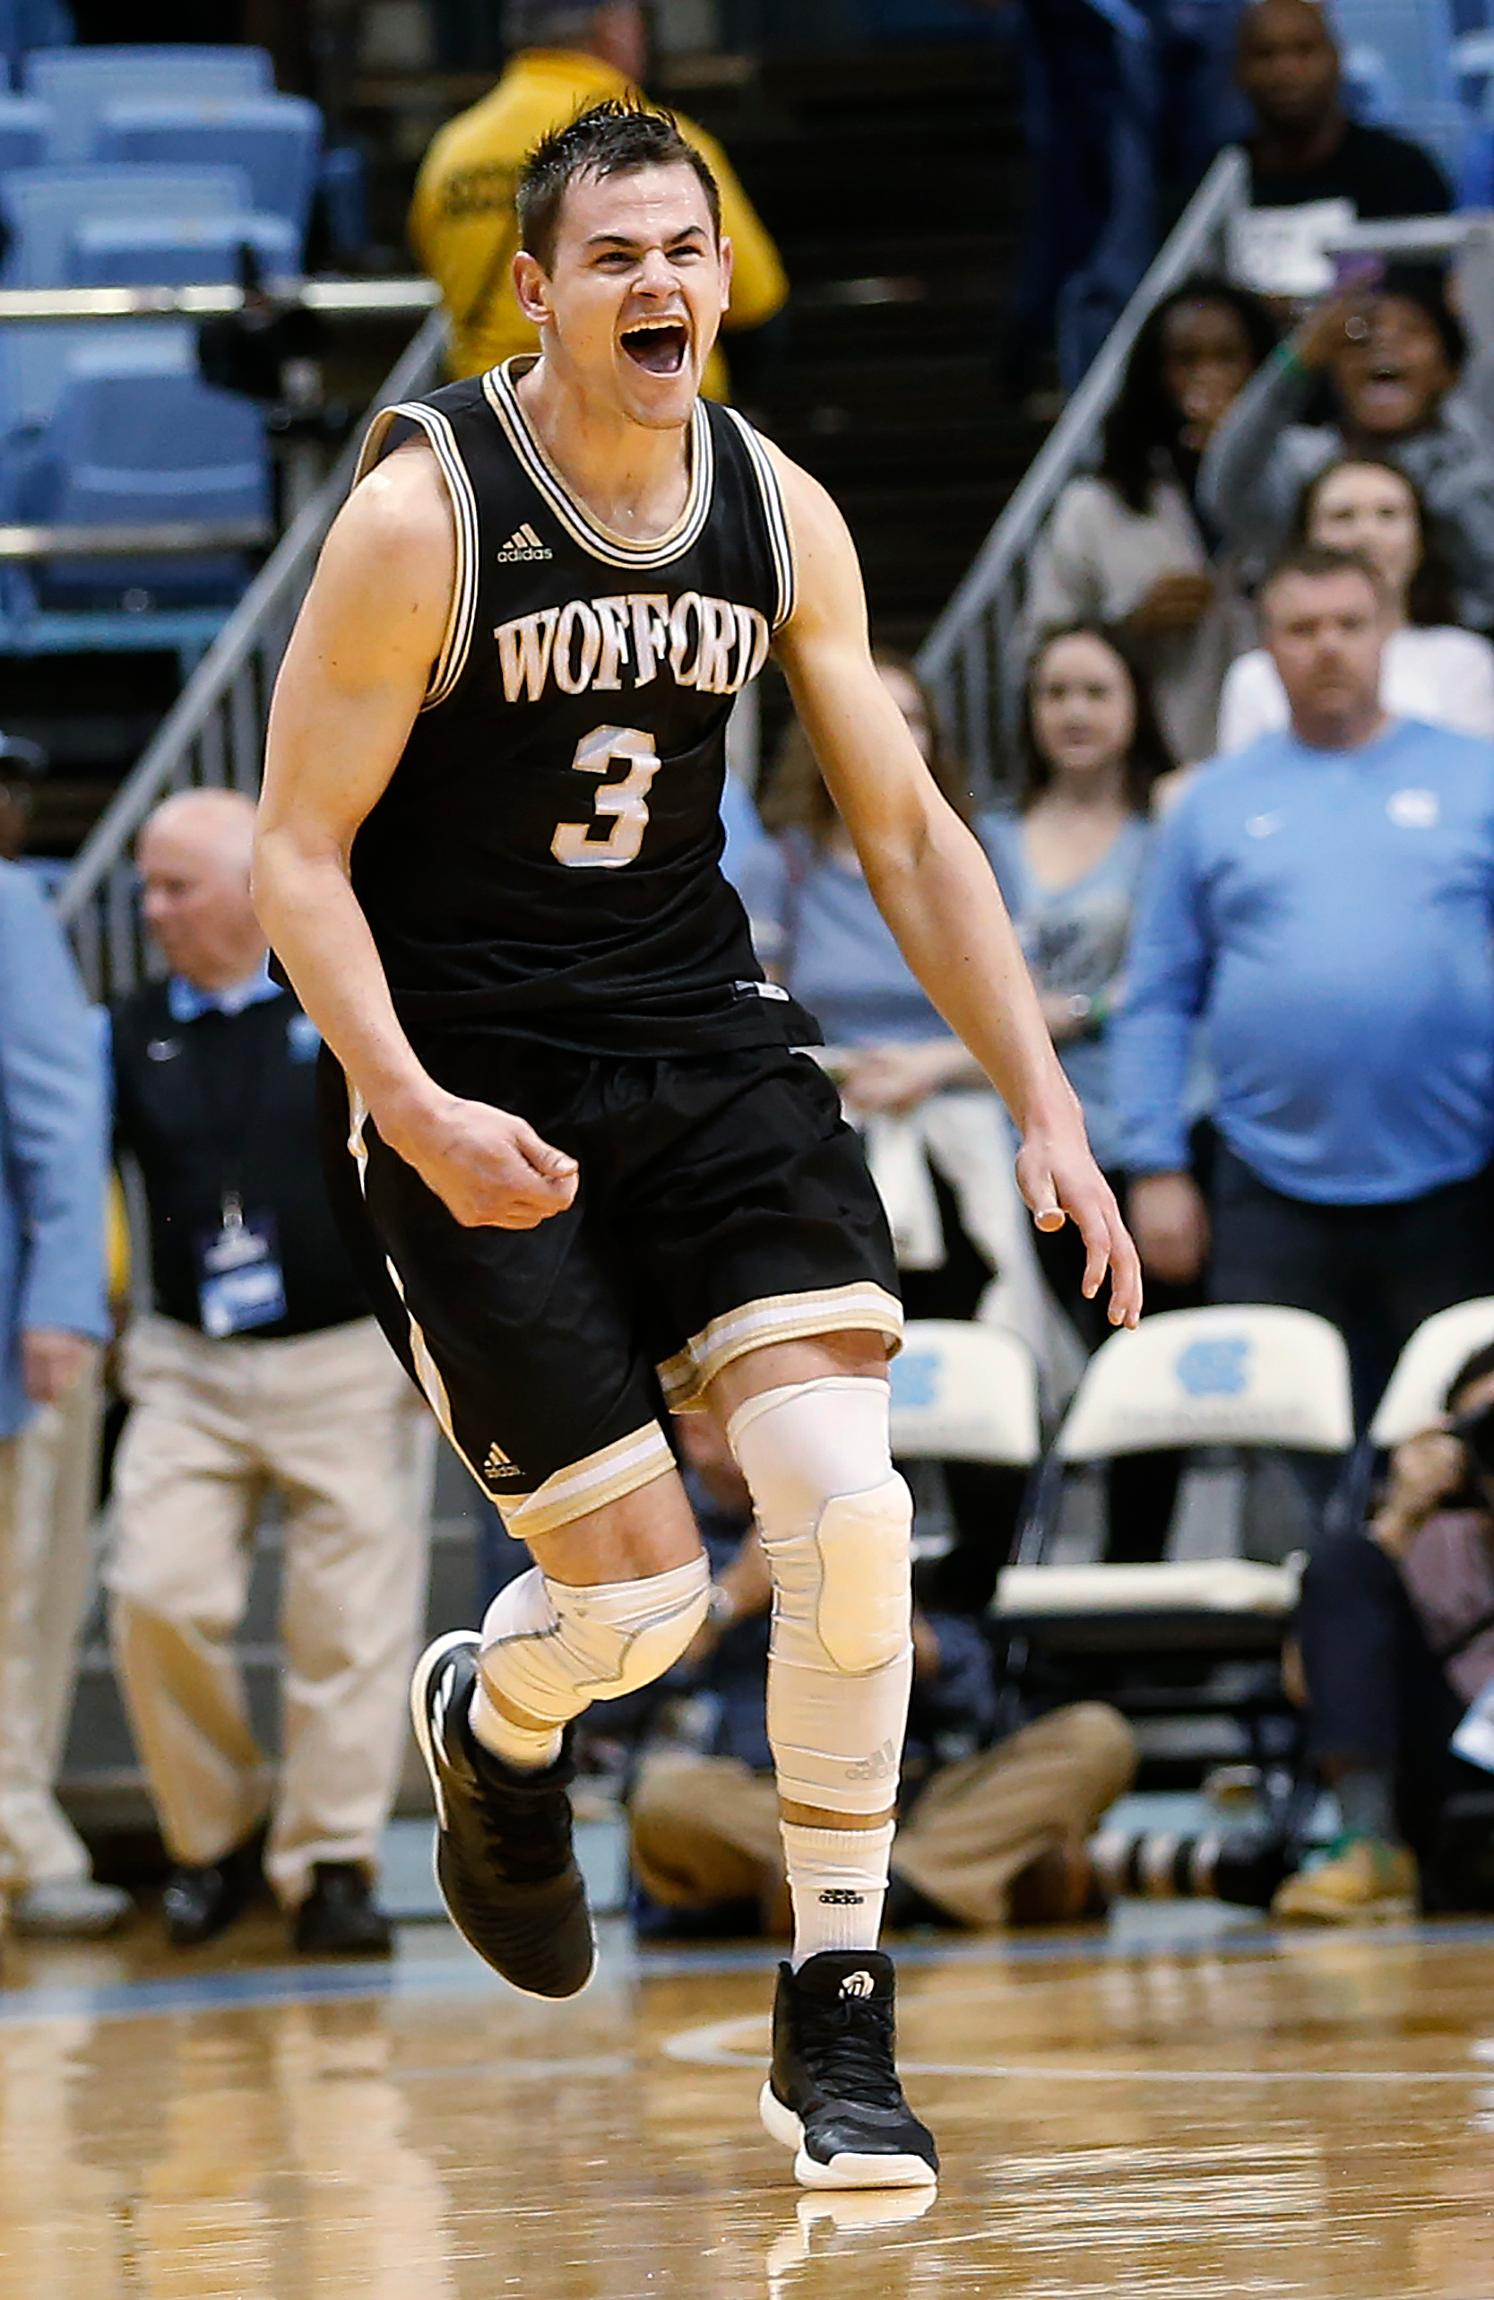 Wofford's Fletcher Magee reacts after Wofford defeated  North Carolina 79-75 in an NCAA college basketball game in Chapel Hill, N.C., Wednesday, Dec. 20, 2017. (AP Photo/Ellen Ozier)